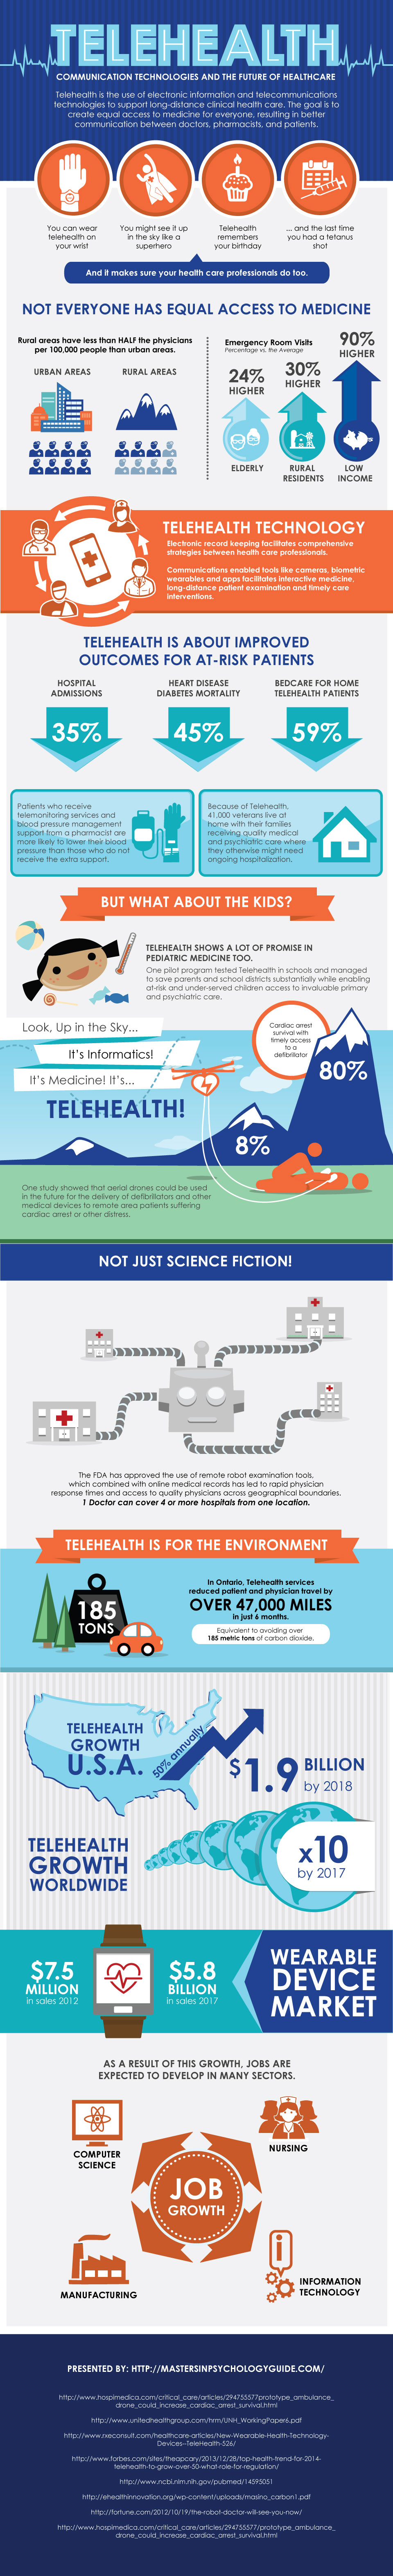 Telehealth Design  - MastersinPsychologyGuide.com - Infographic